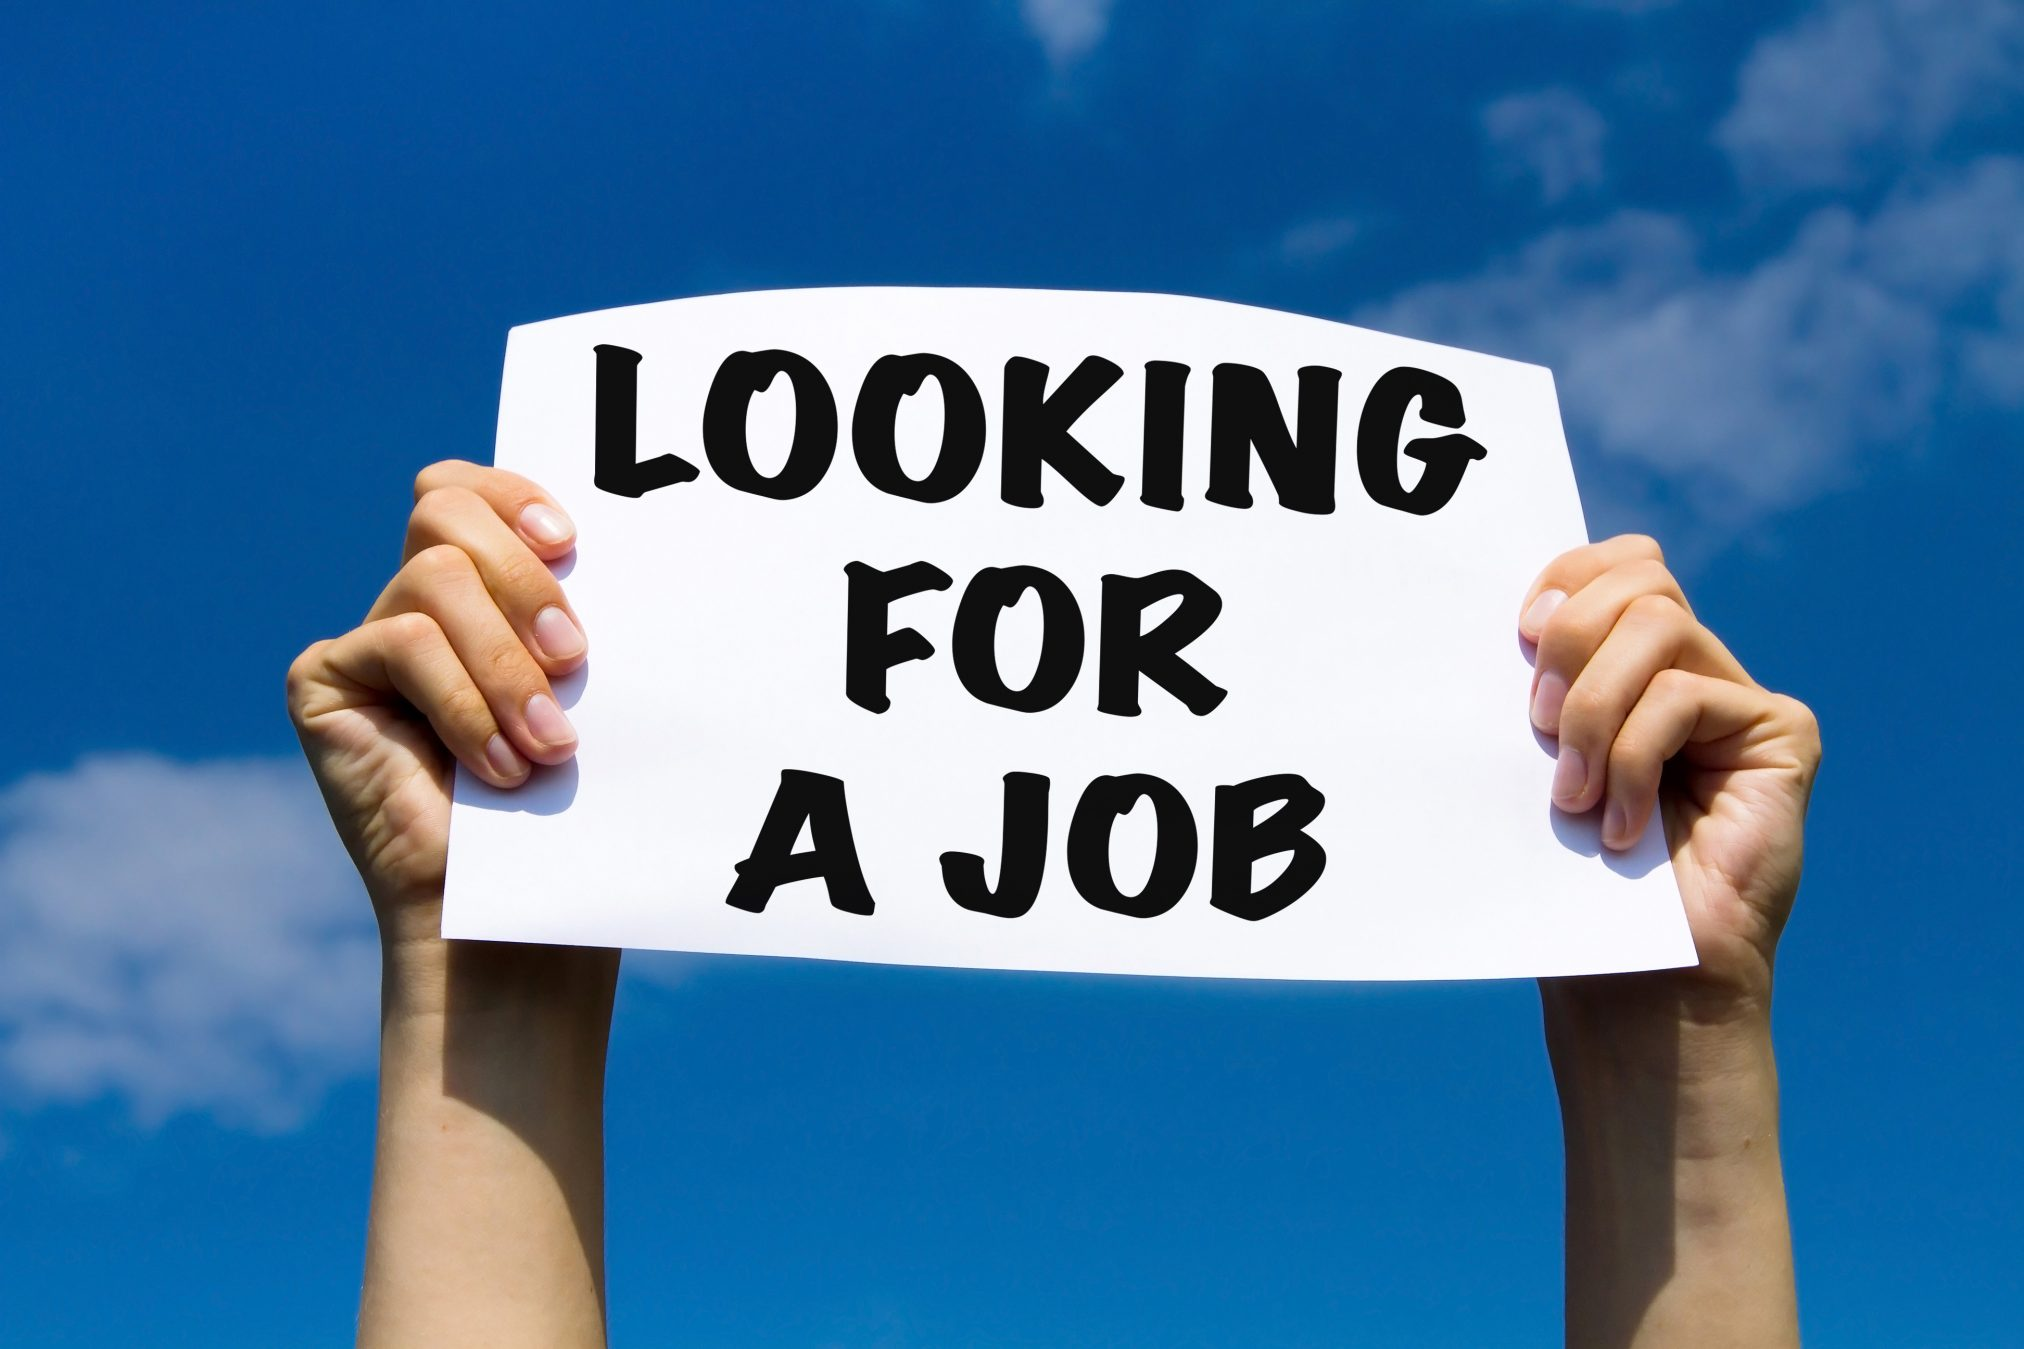 holding a sign: 'looking for a job'